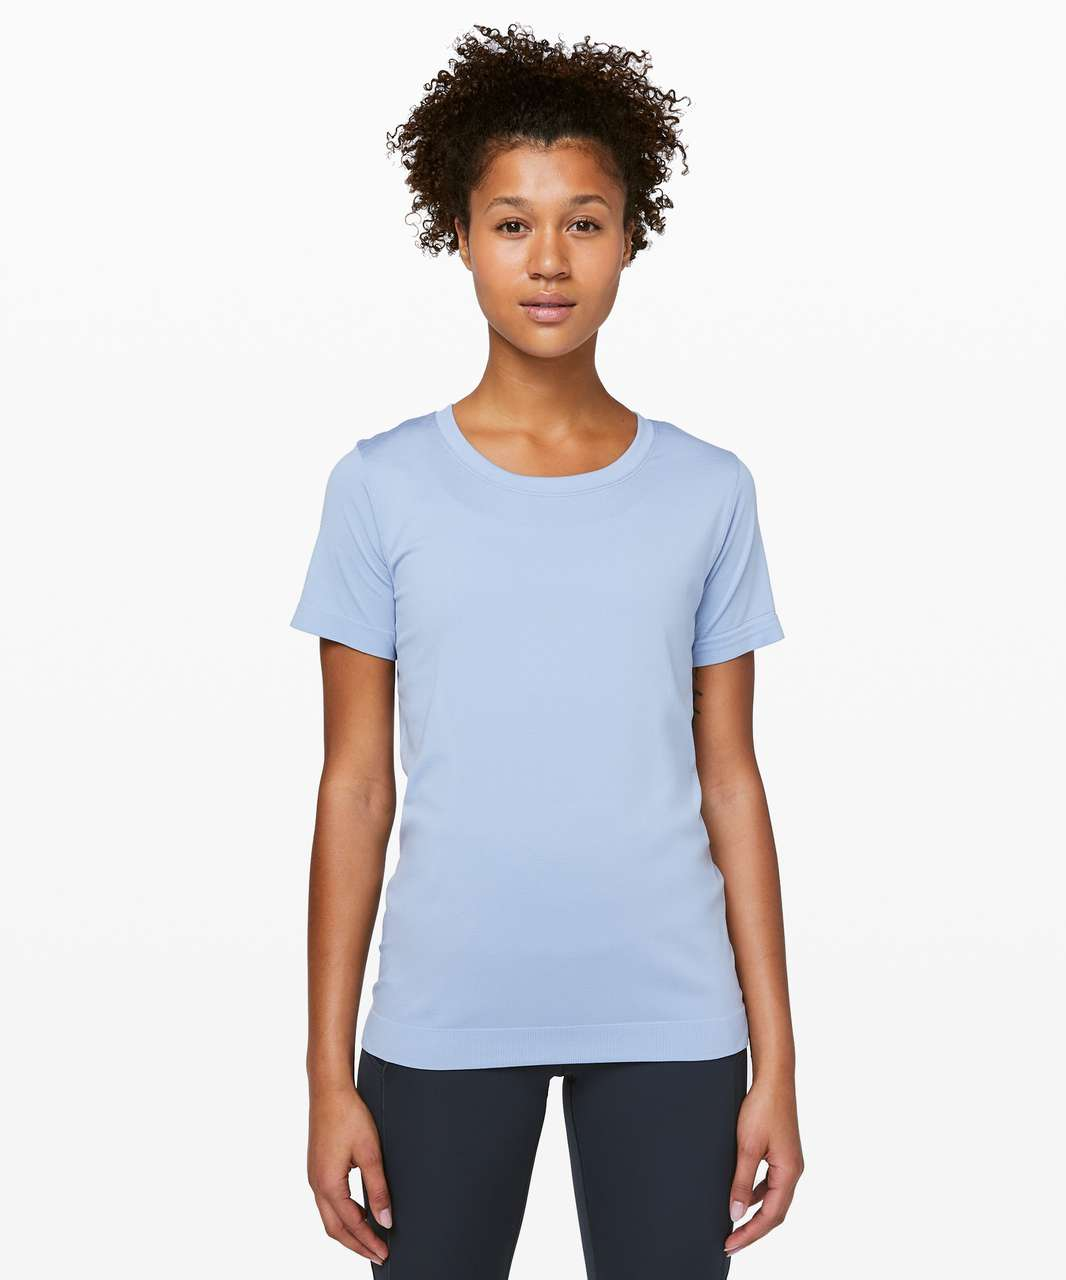 Lululemon Swiftly Tech Short Sleeve (Breeze) *Relaxed Fit - Ice Cap / Ice Cap